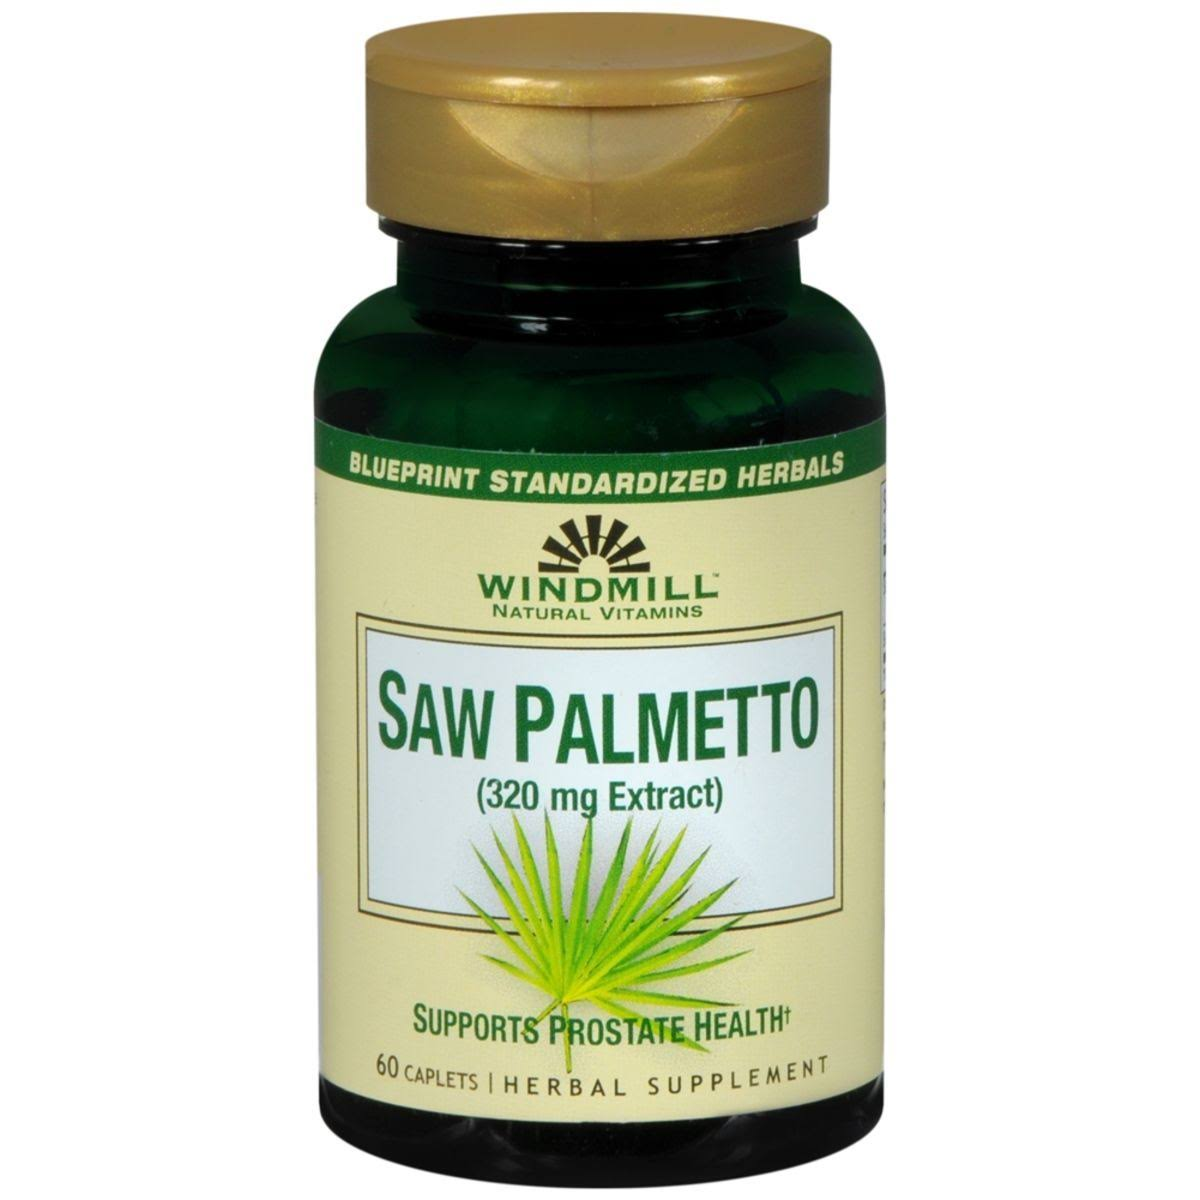 Windmill Herbals Saw Palmetto - 160mg, 60 Caplets